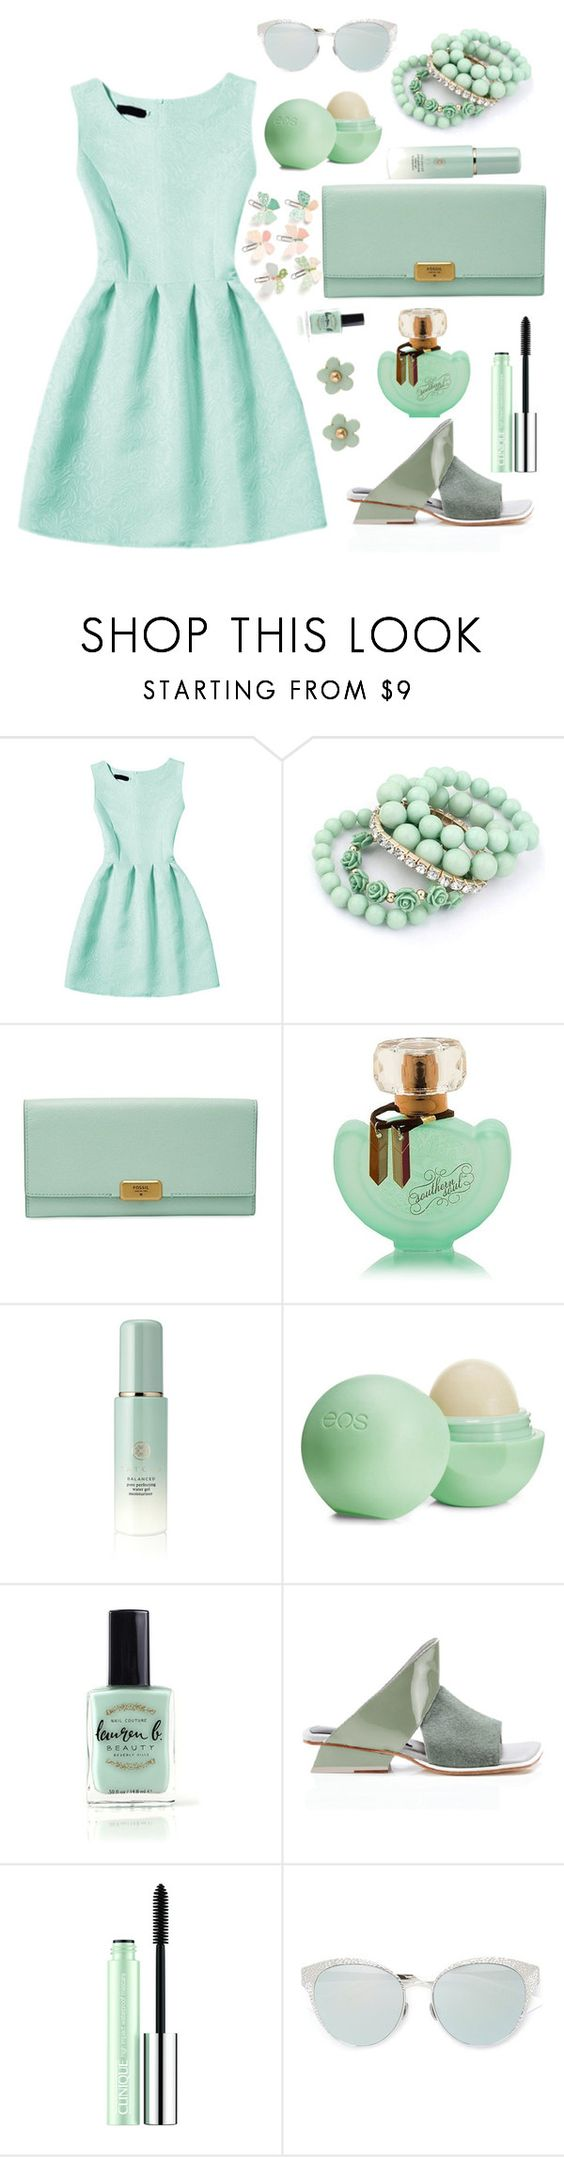 """dreaa"" by uptodatefashion-julia ❤ liked on Polyvore featuring FOSSIL, Tatcha, Eos, Lauren B. Beauty, Abcense, Clinique, Christian Dior and Monsoon"